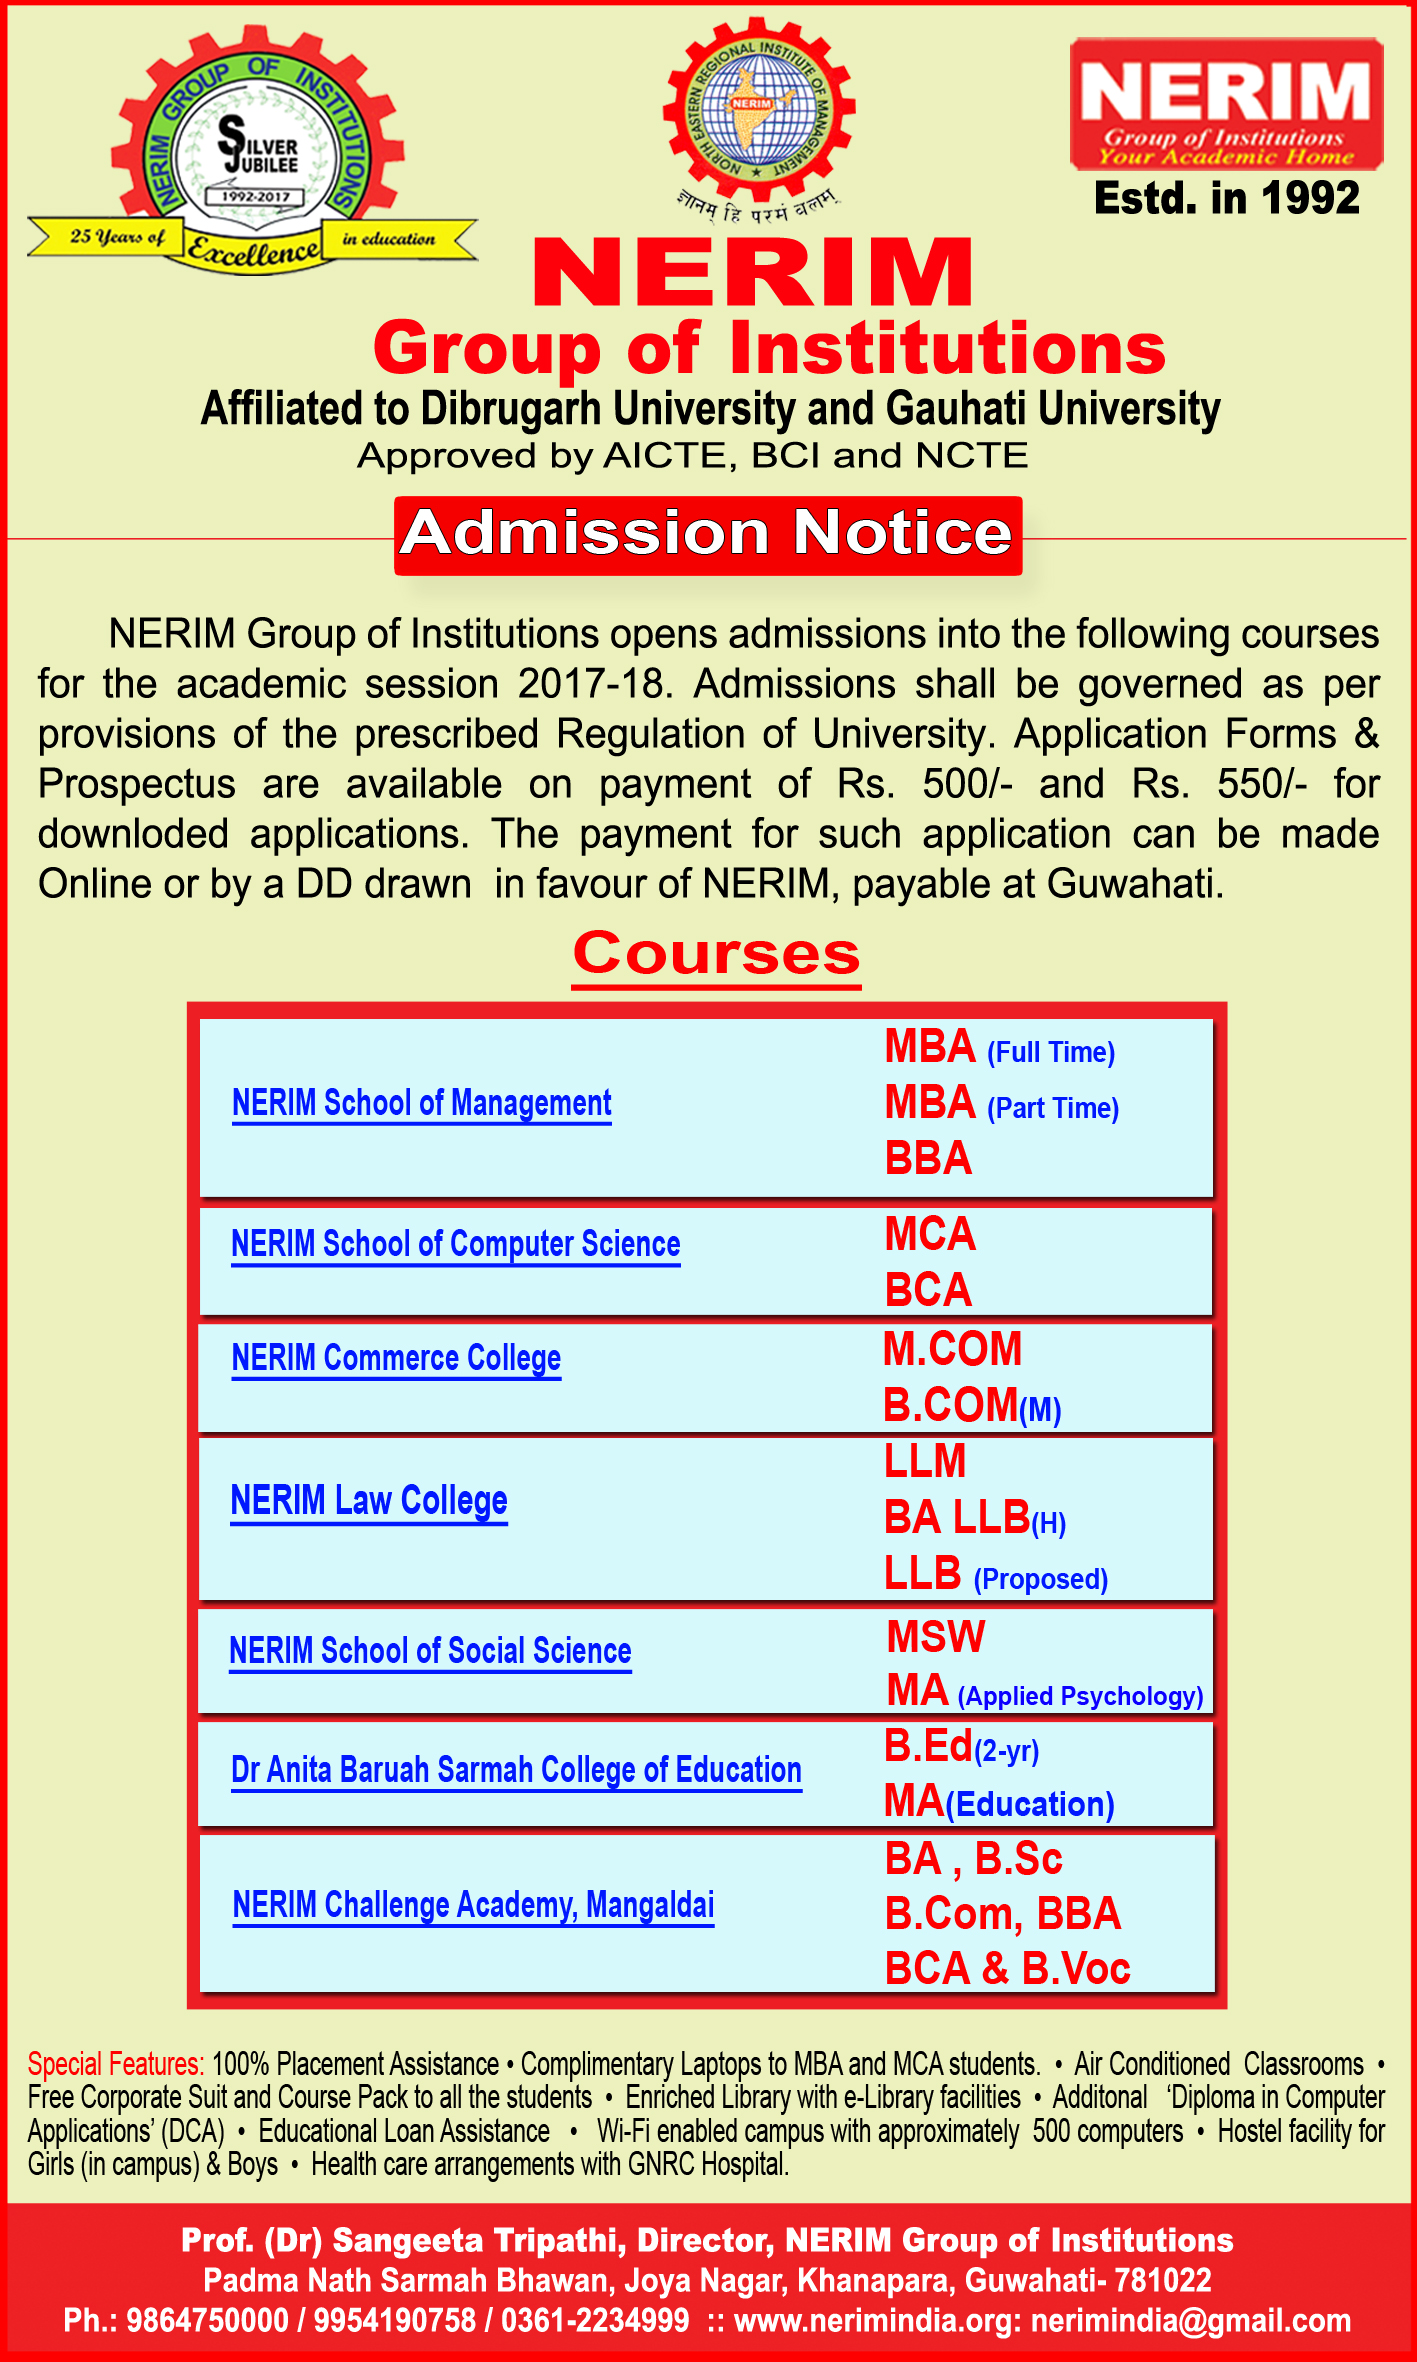 Welcome to NERIM (North Eastern Regional Institute of Management